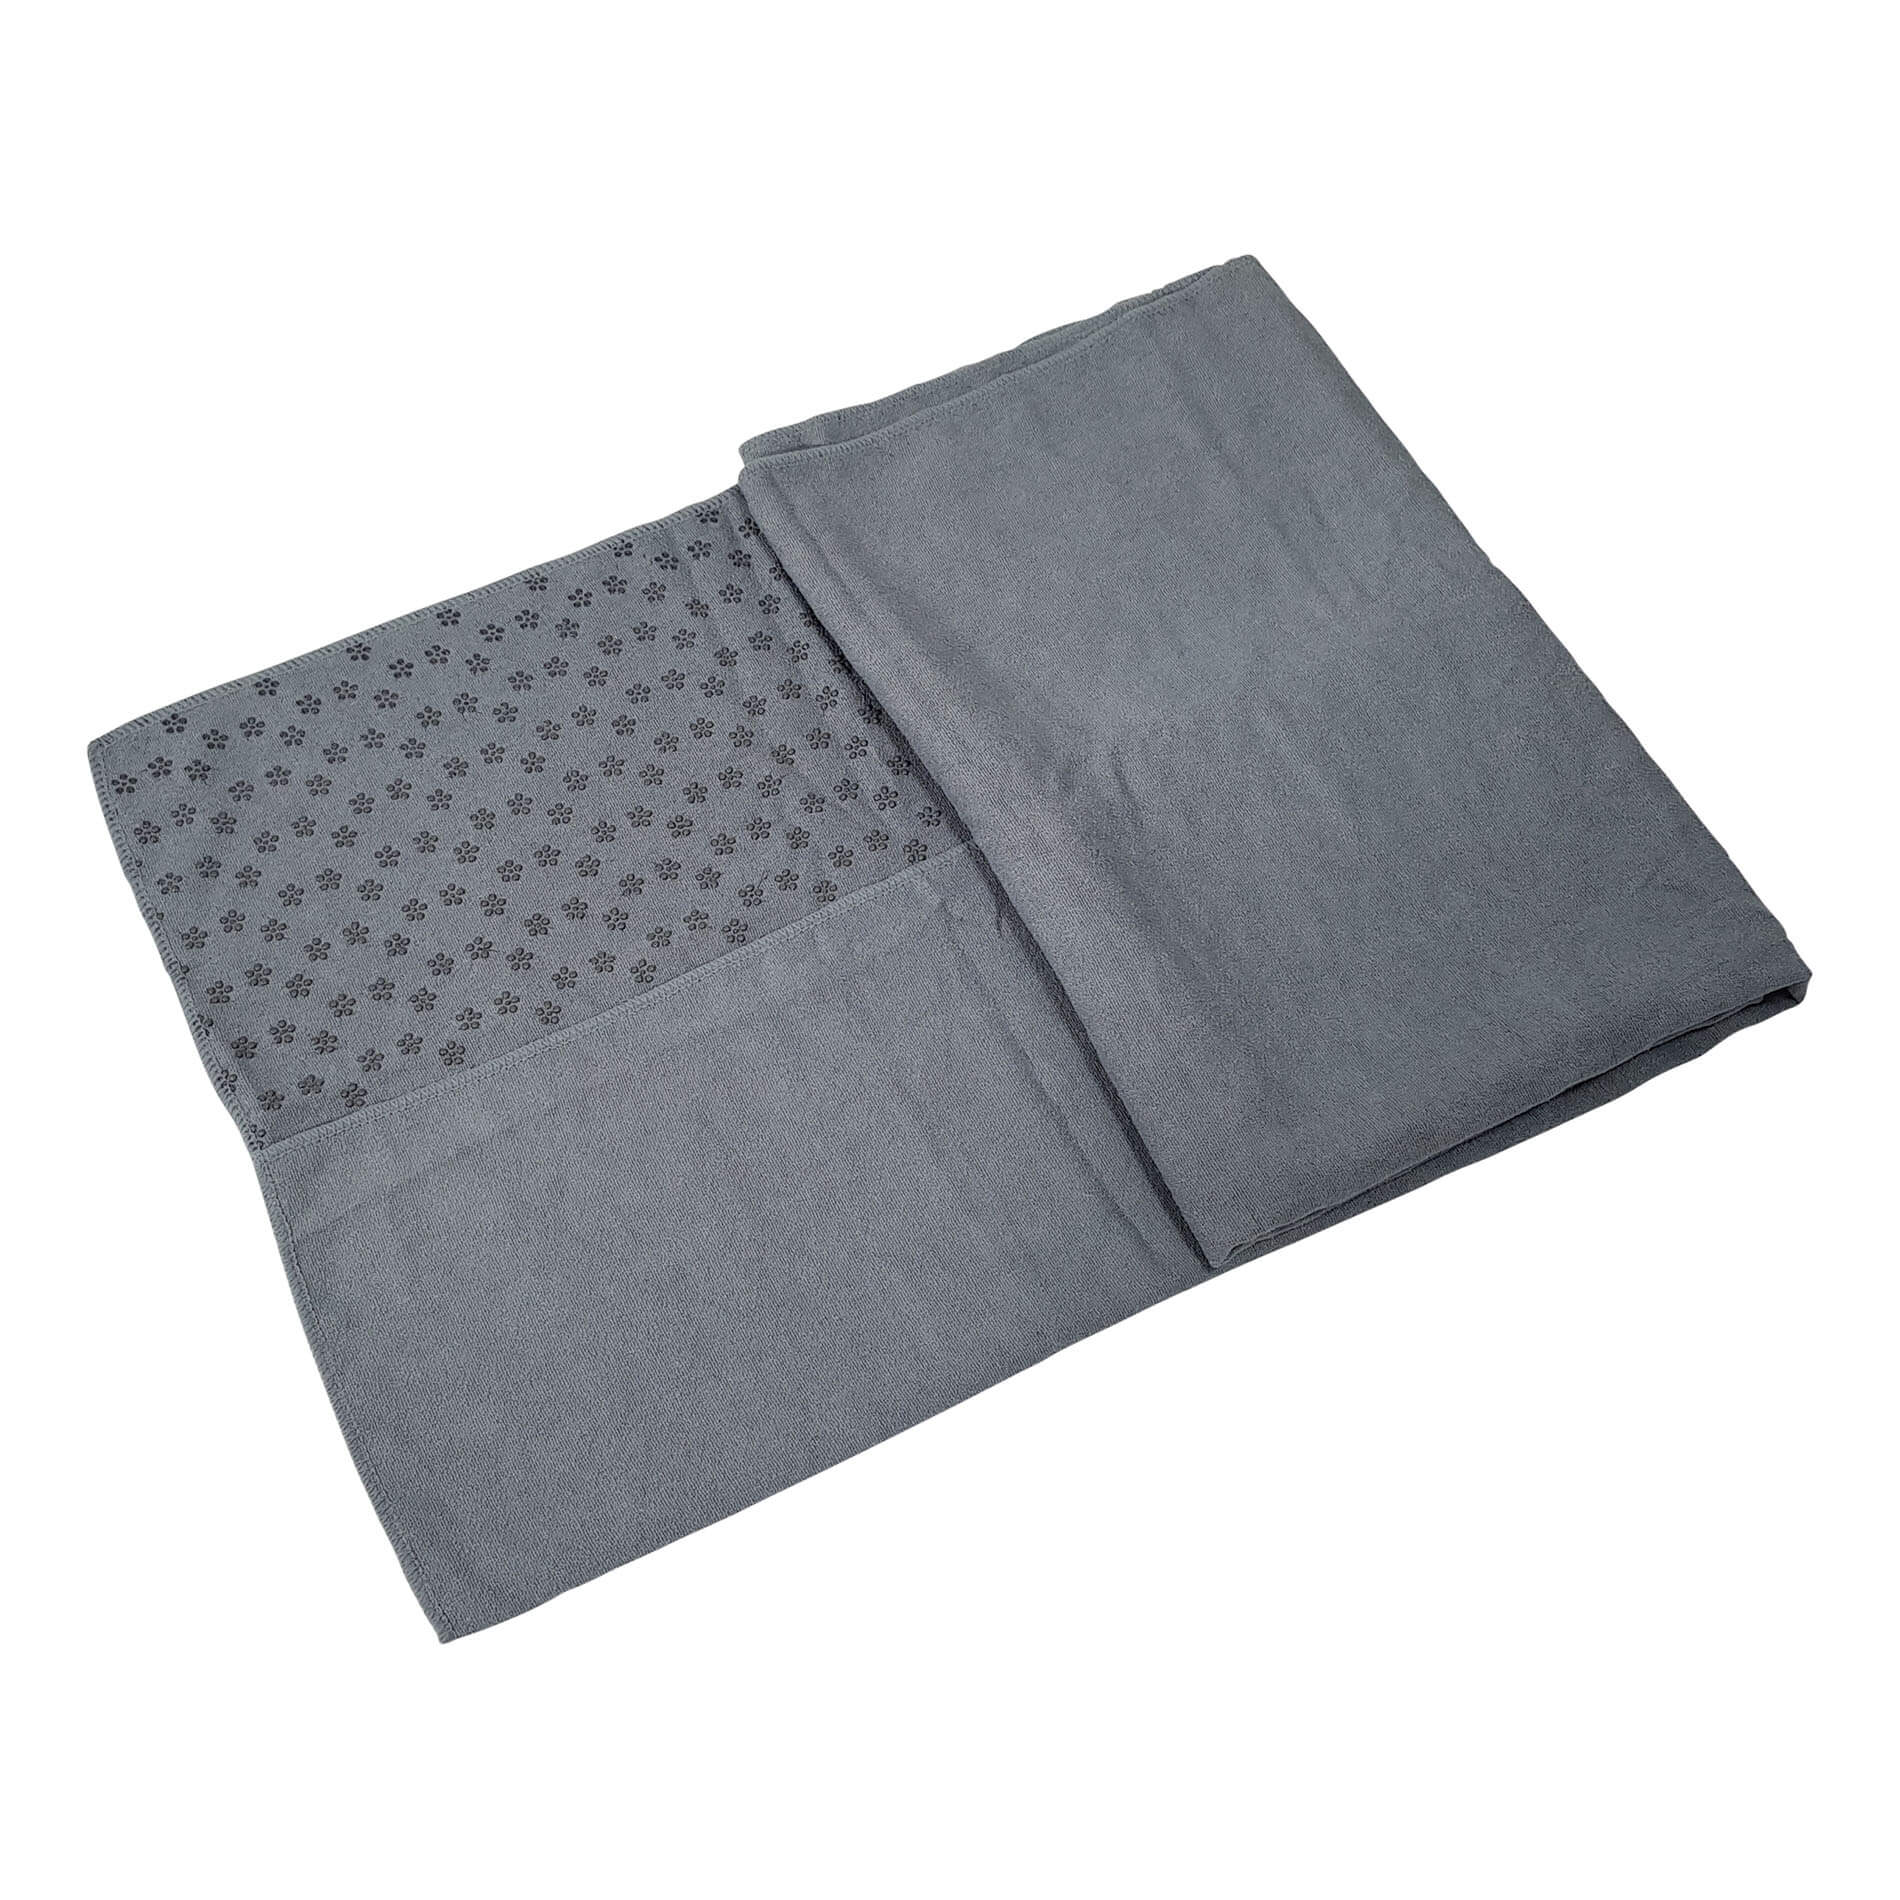 Yoga Towel 180-63 cm With Carry Bag - Grey